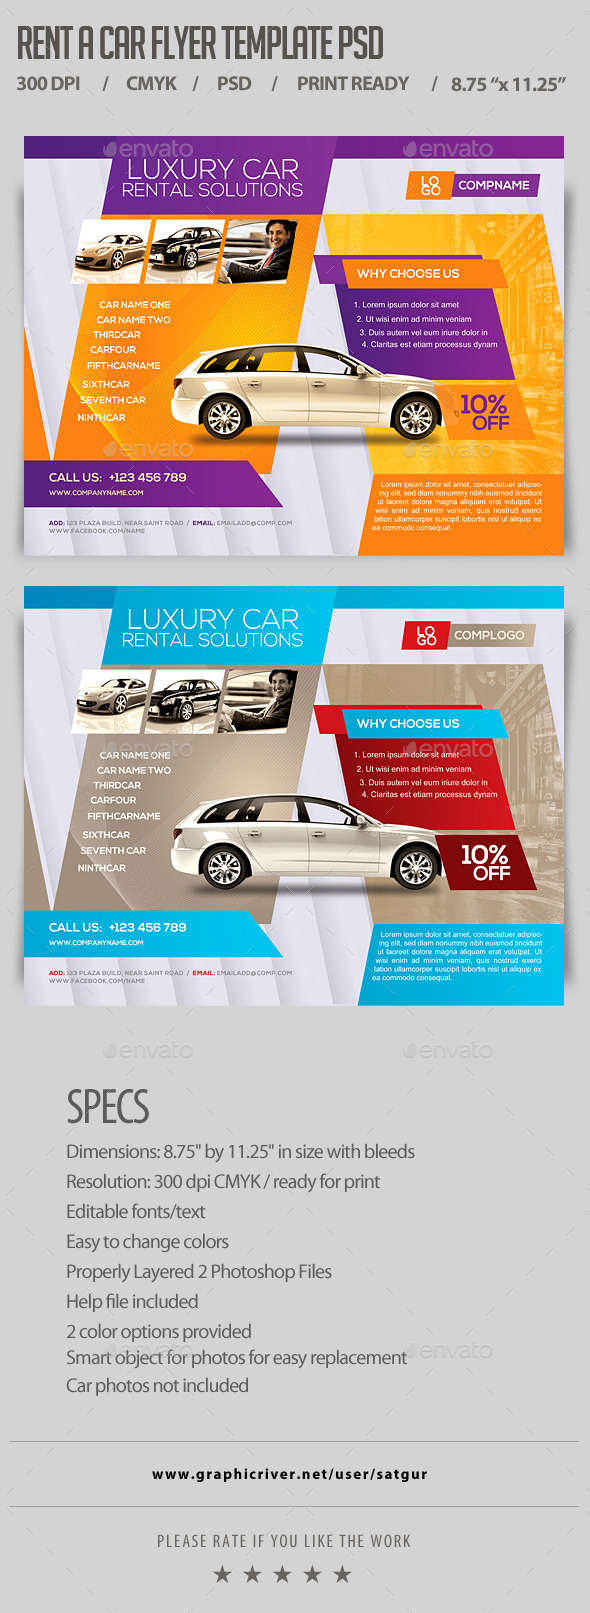 Rent a Car Flyer Template PSD - Corporate Flyers